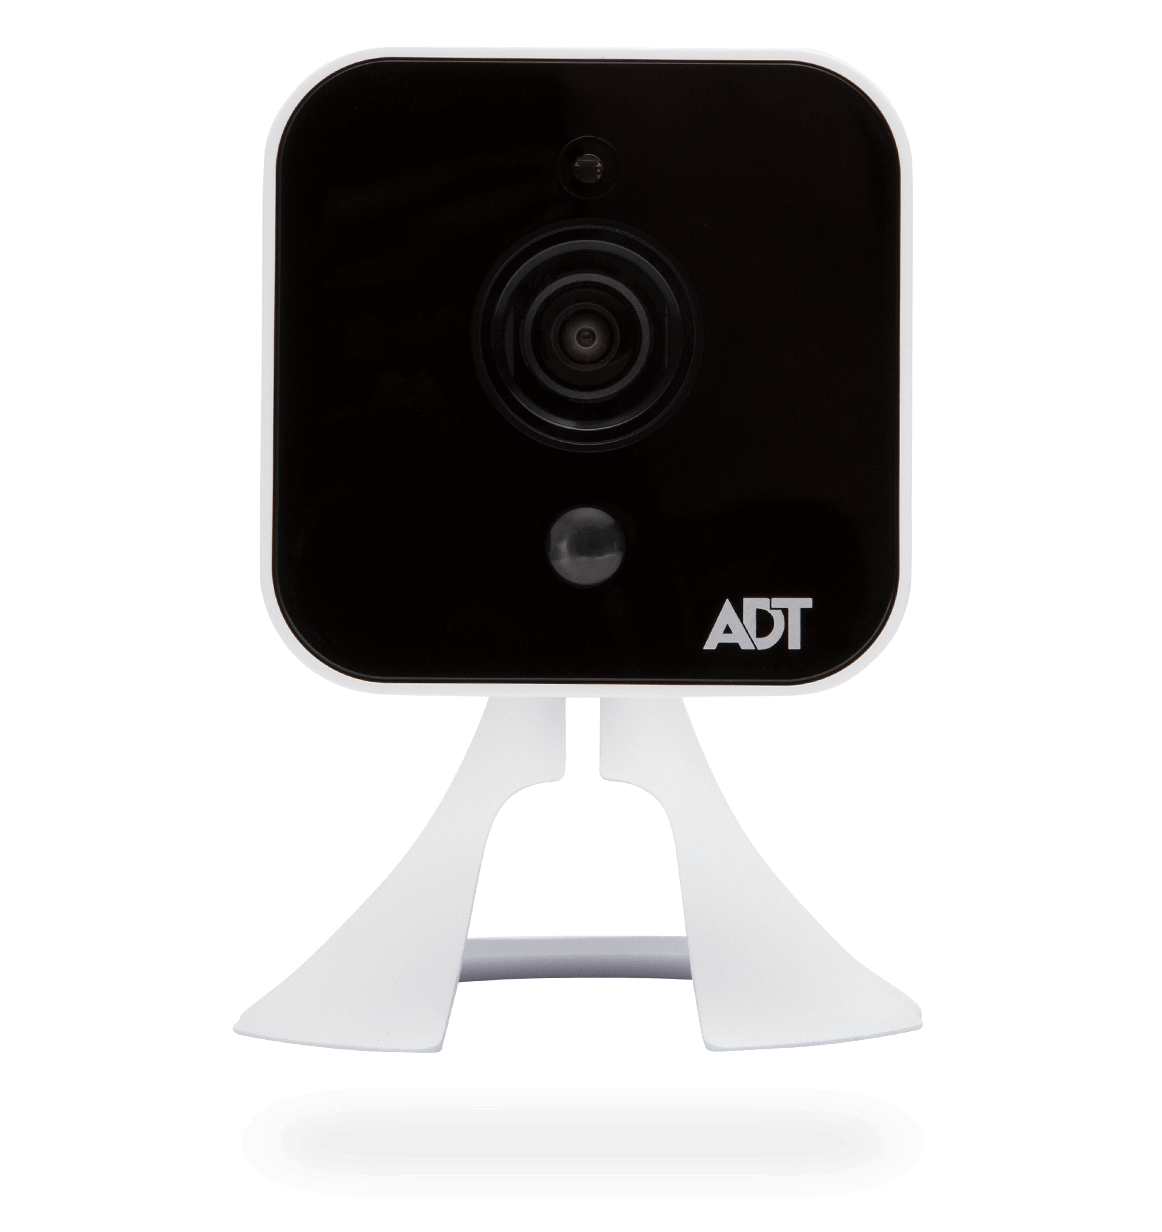 ADT Outdoor Camera Product Image